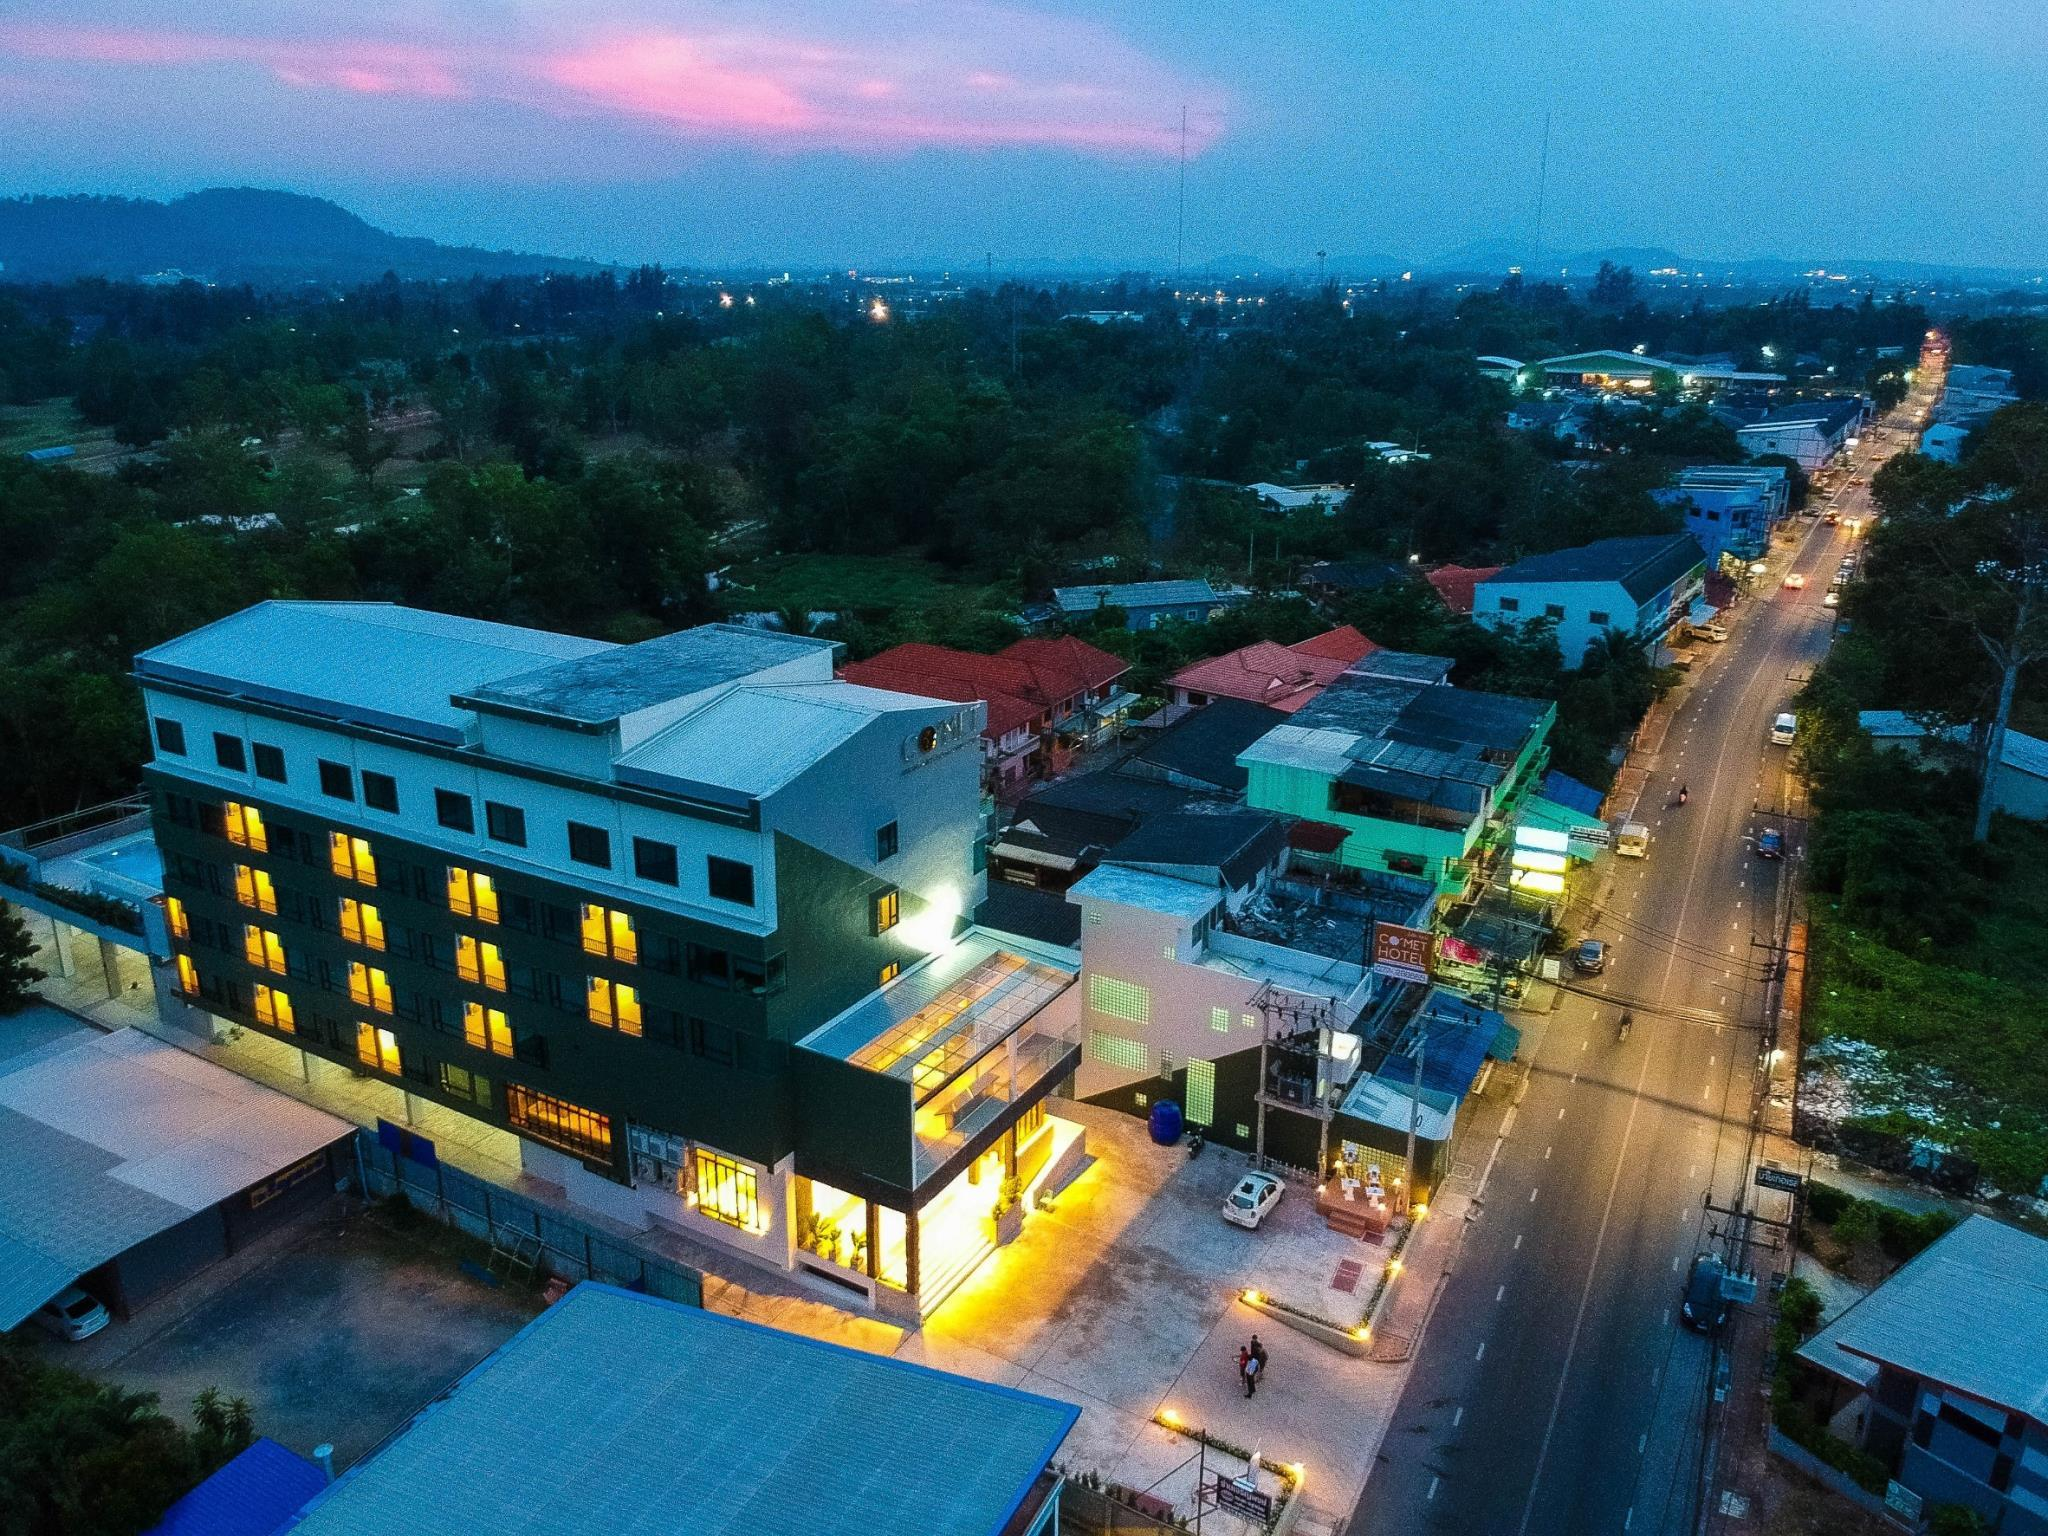 Hotel Review: Comet Hotel Surat Thani – Photos, Room Rates and Deals